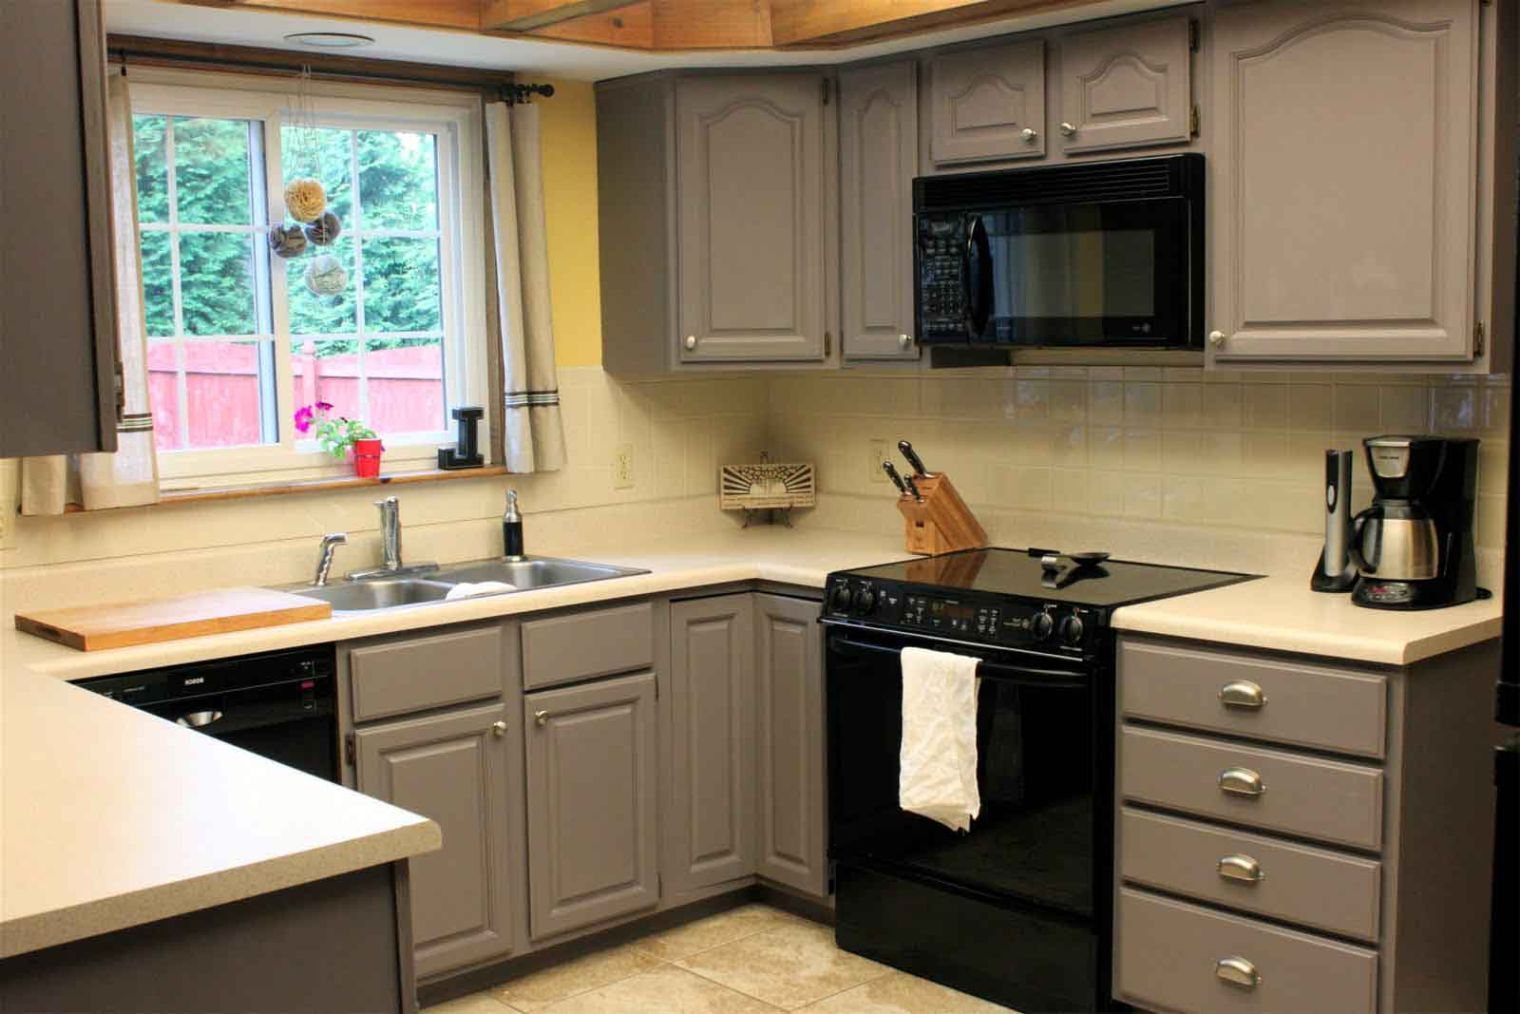 Gallery Of Kitchen Cabinets Ideas For Small Kitchen Ideas Home Depot Kitchen Refacing Kitchen Cabinets Kitchen Cabinets Kits